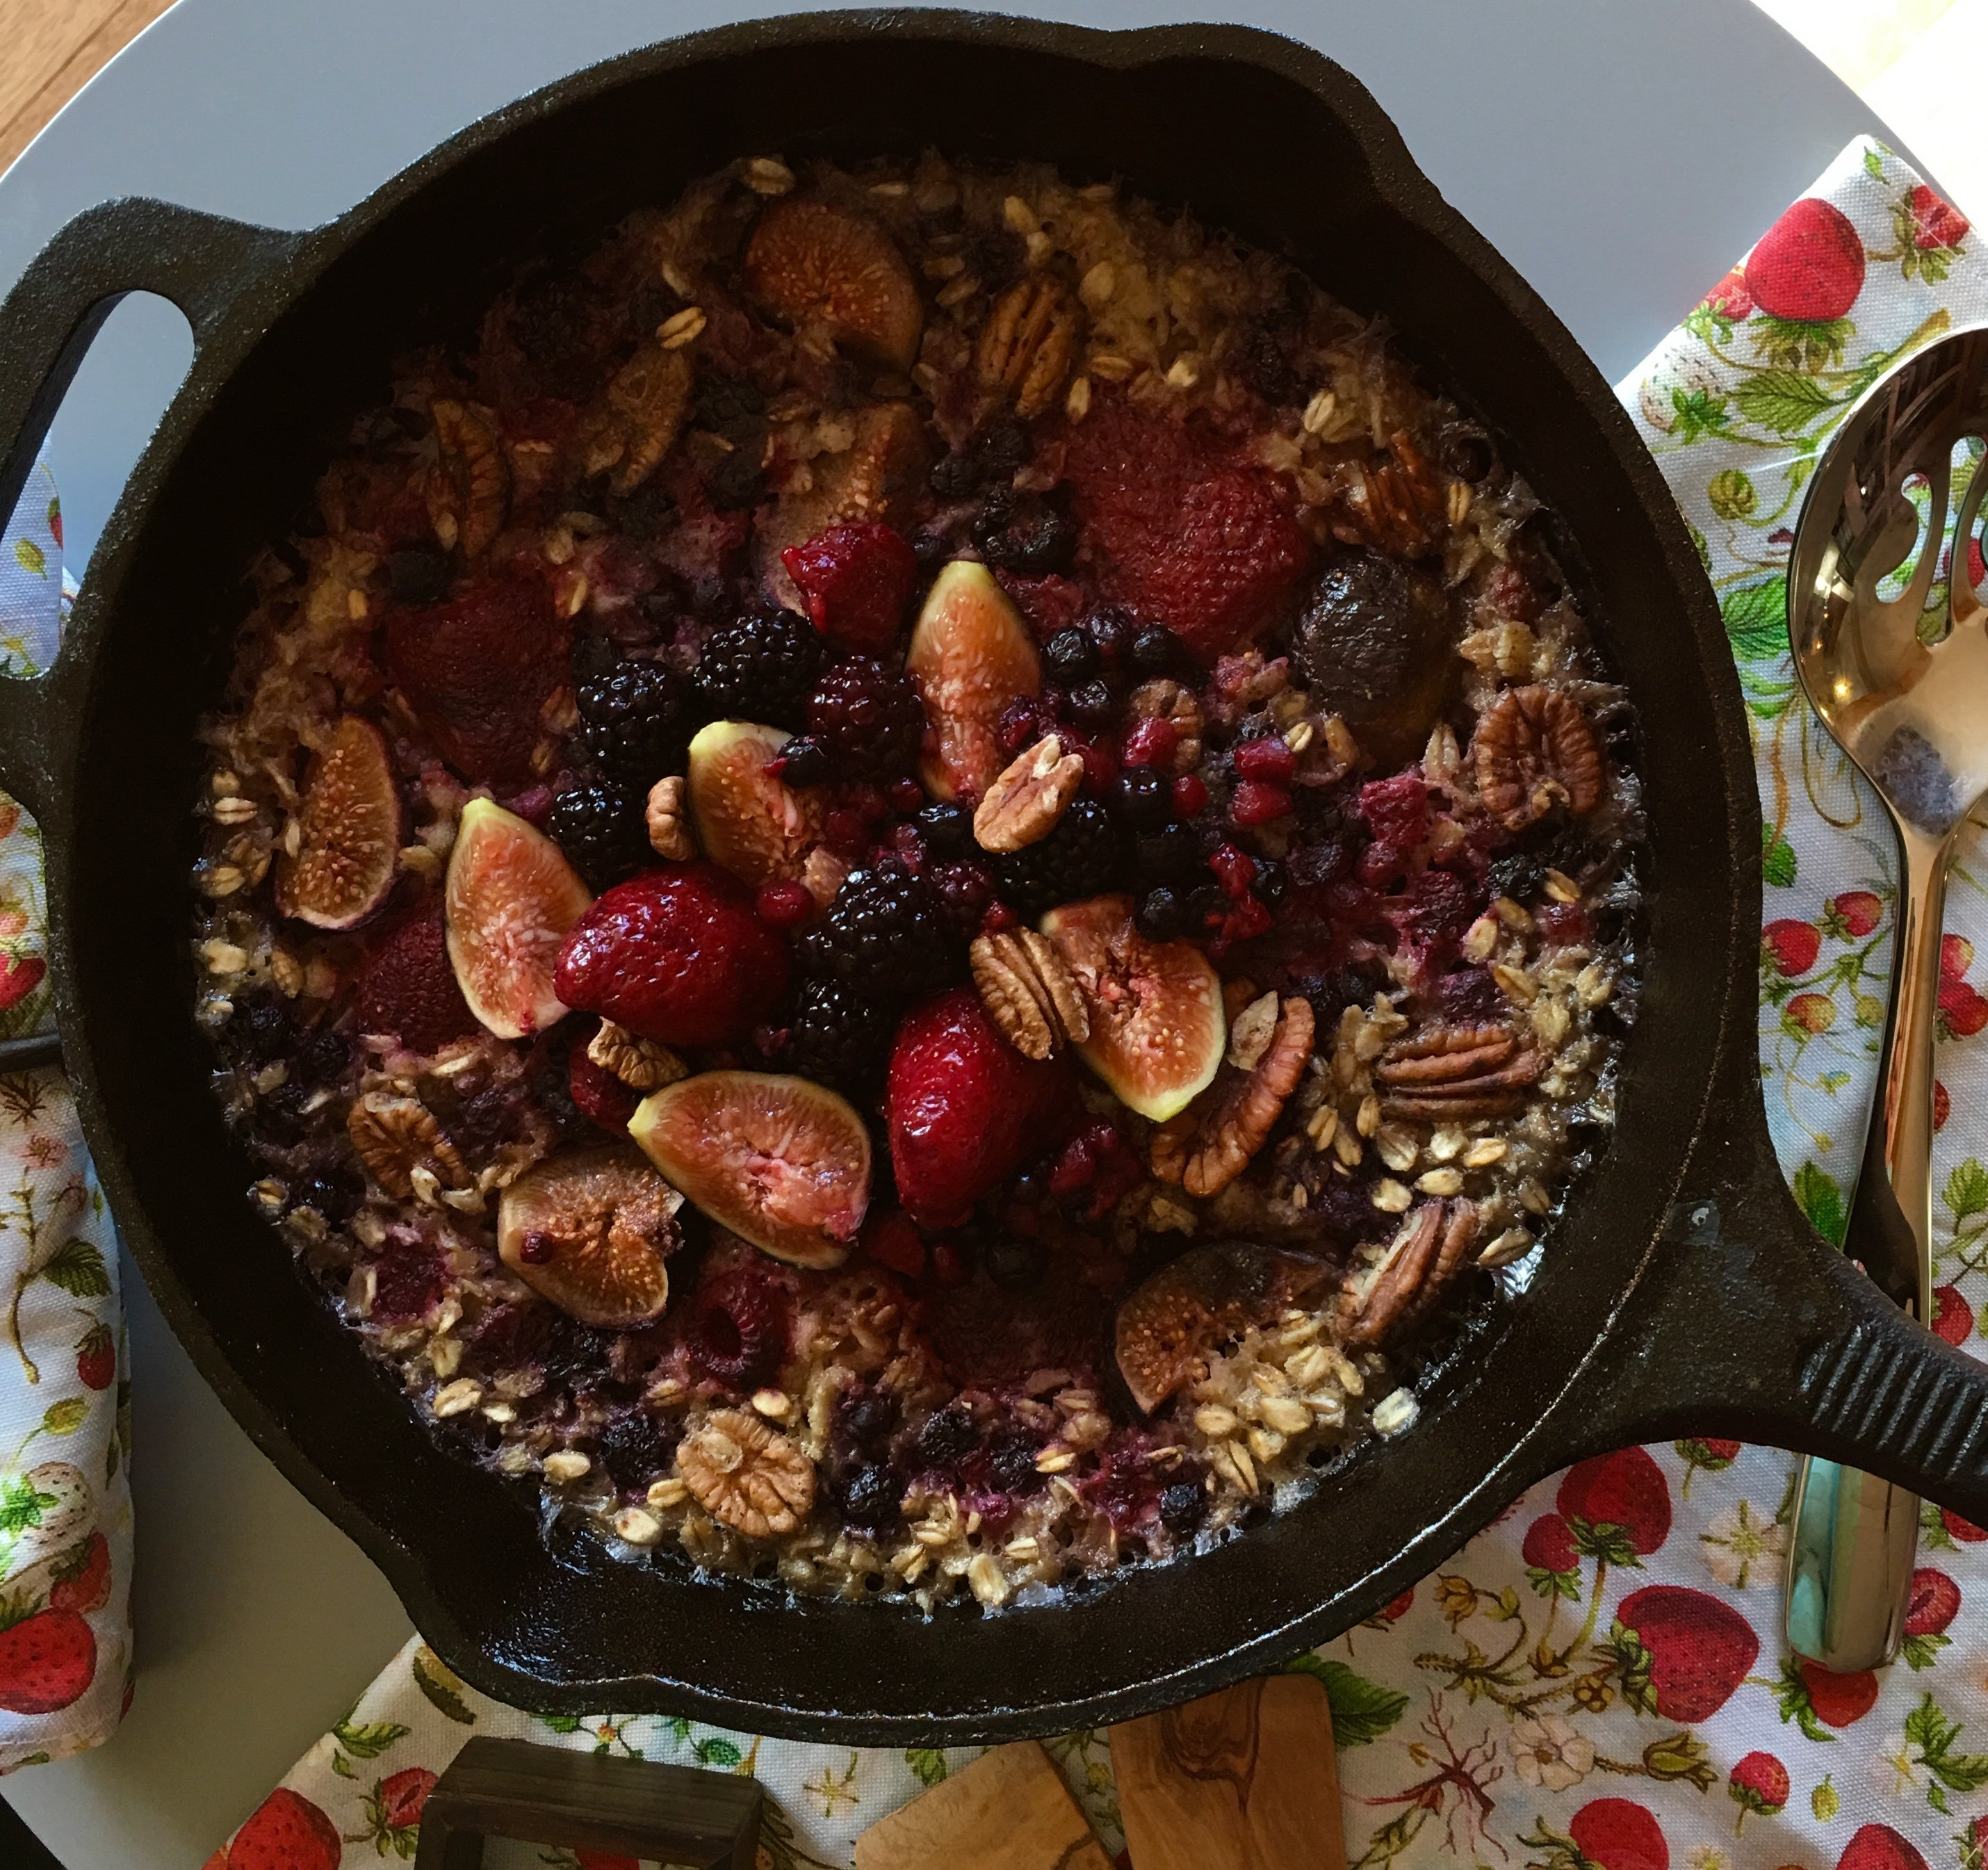 Granola-cereal-urban hippie-Cardamom Maple Oatmeal with Figs Blackberries and Roasted Pecans-recipe